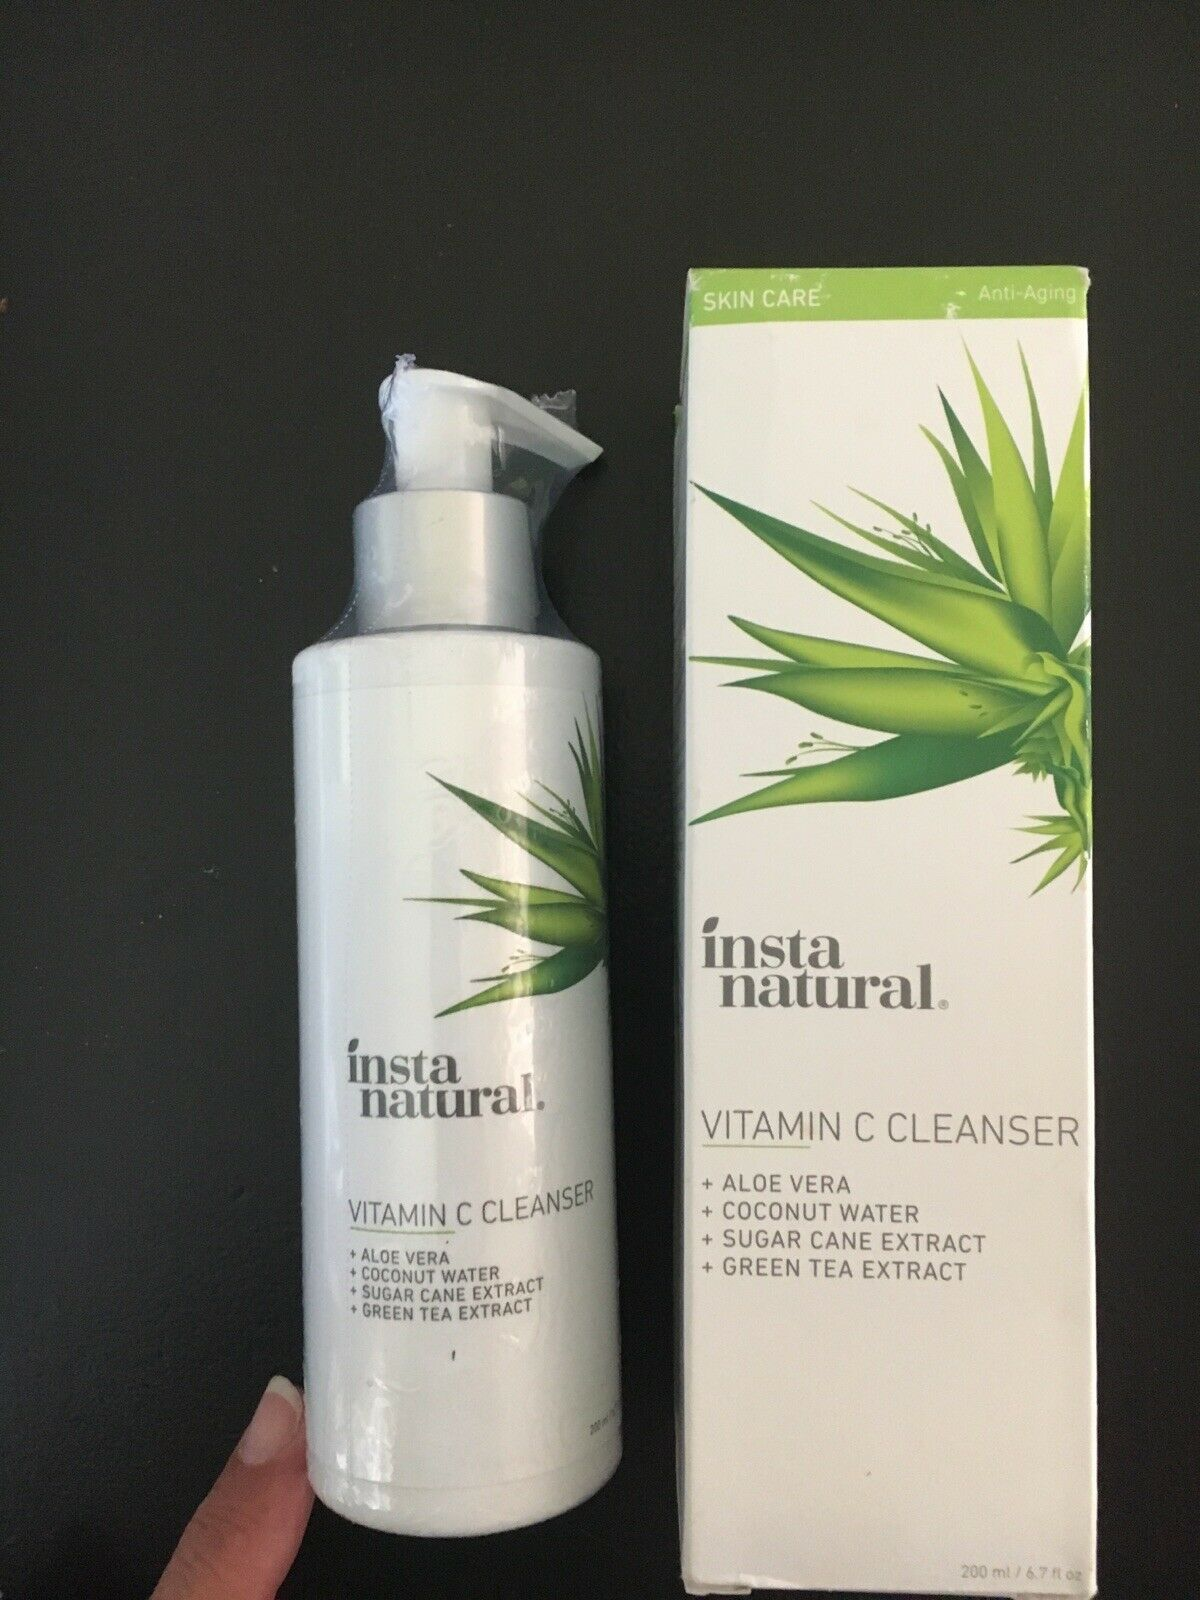 Insta Natural Vitamin C Cleanser Aloe,Coconut Water & More, SHIPS FREE, Sealed 2